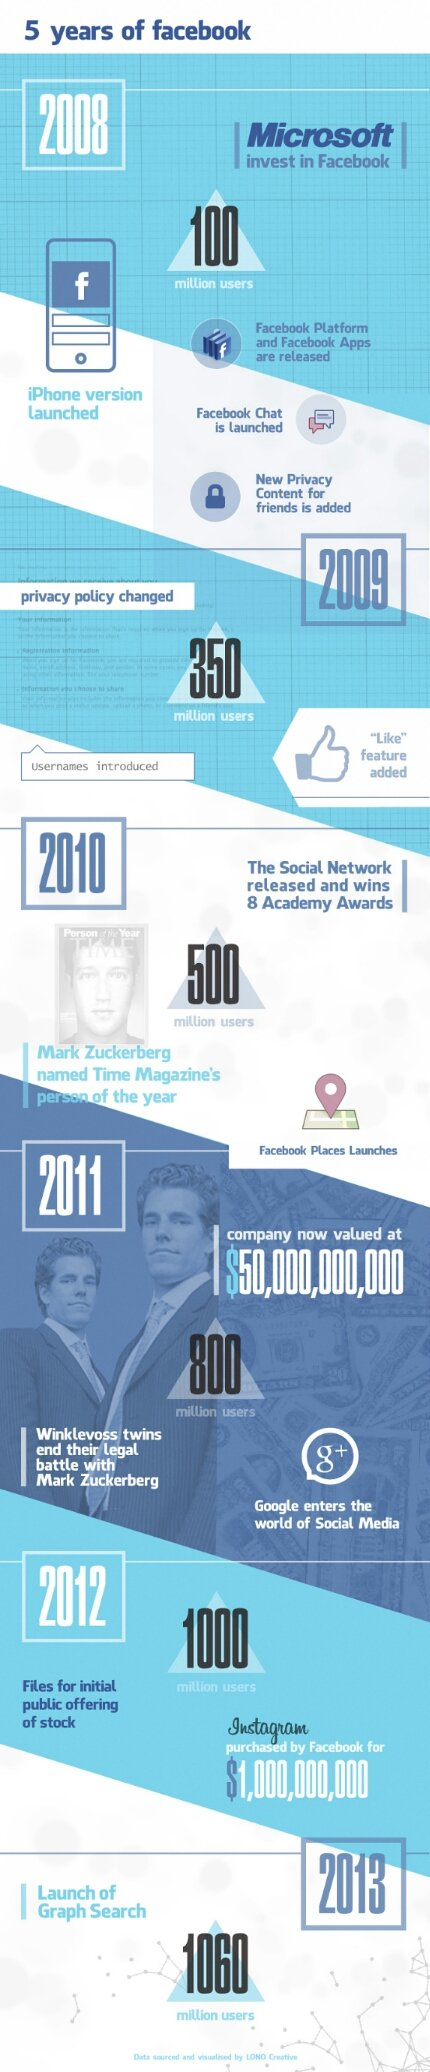 Five years of #Facebook #infographic